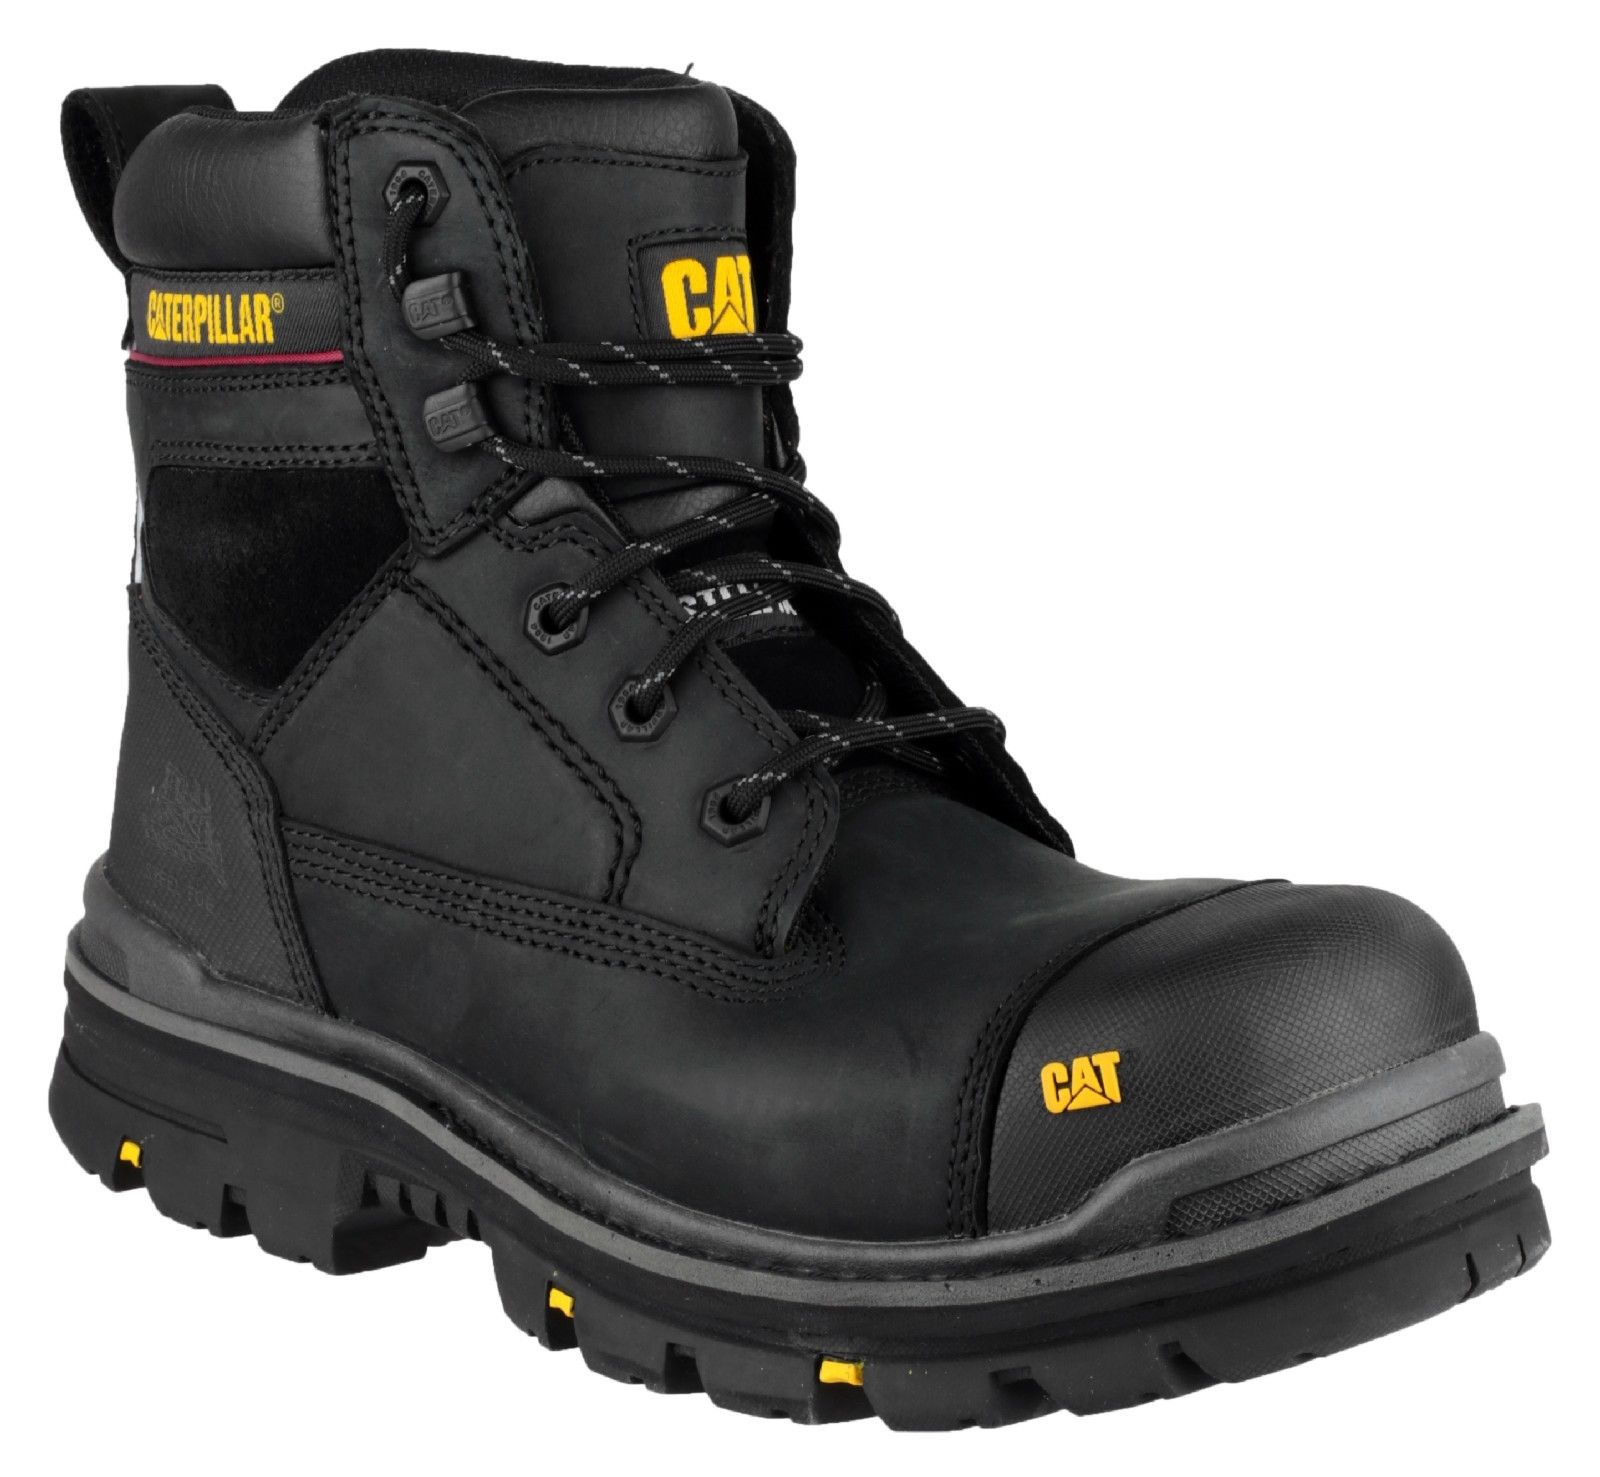 Mens CAT Caterpillar Gravel Steel Toe Cap Safety Work Boots Black ...